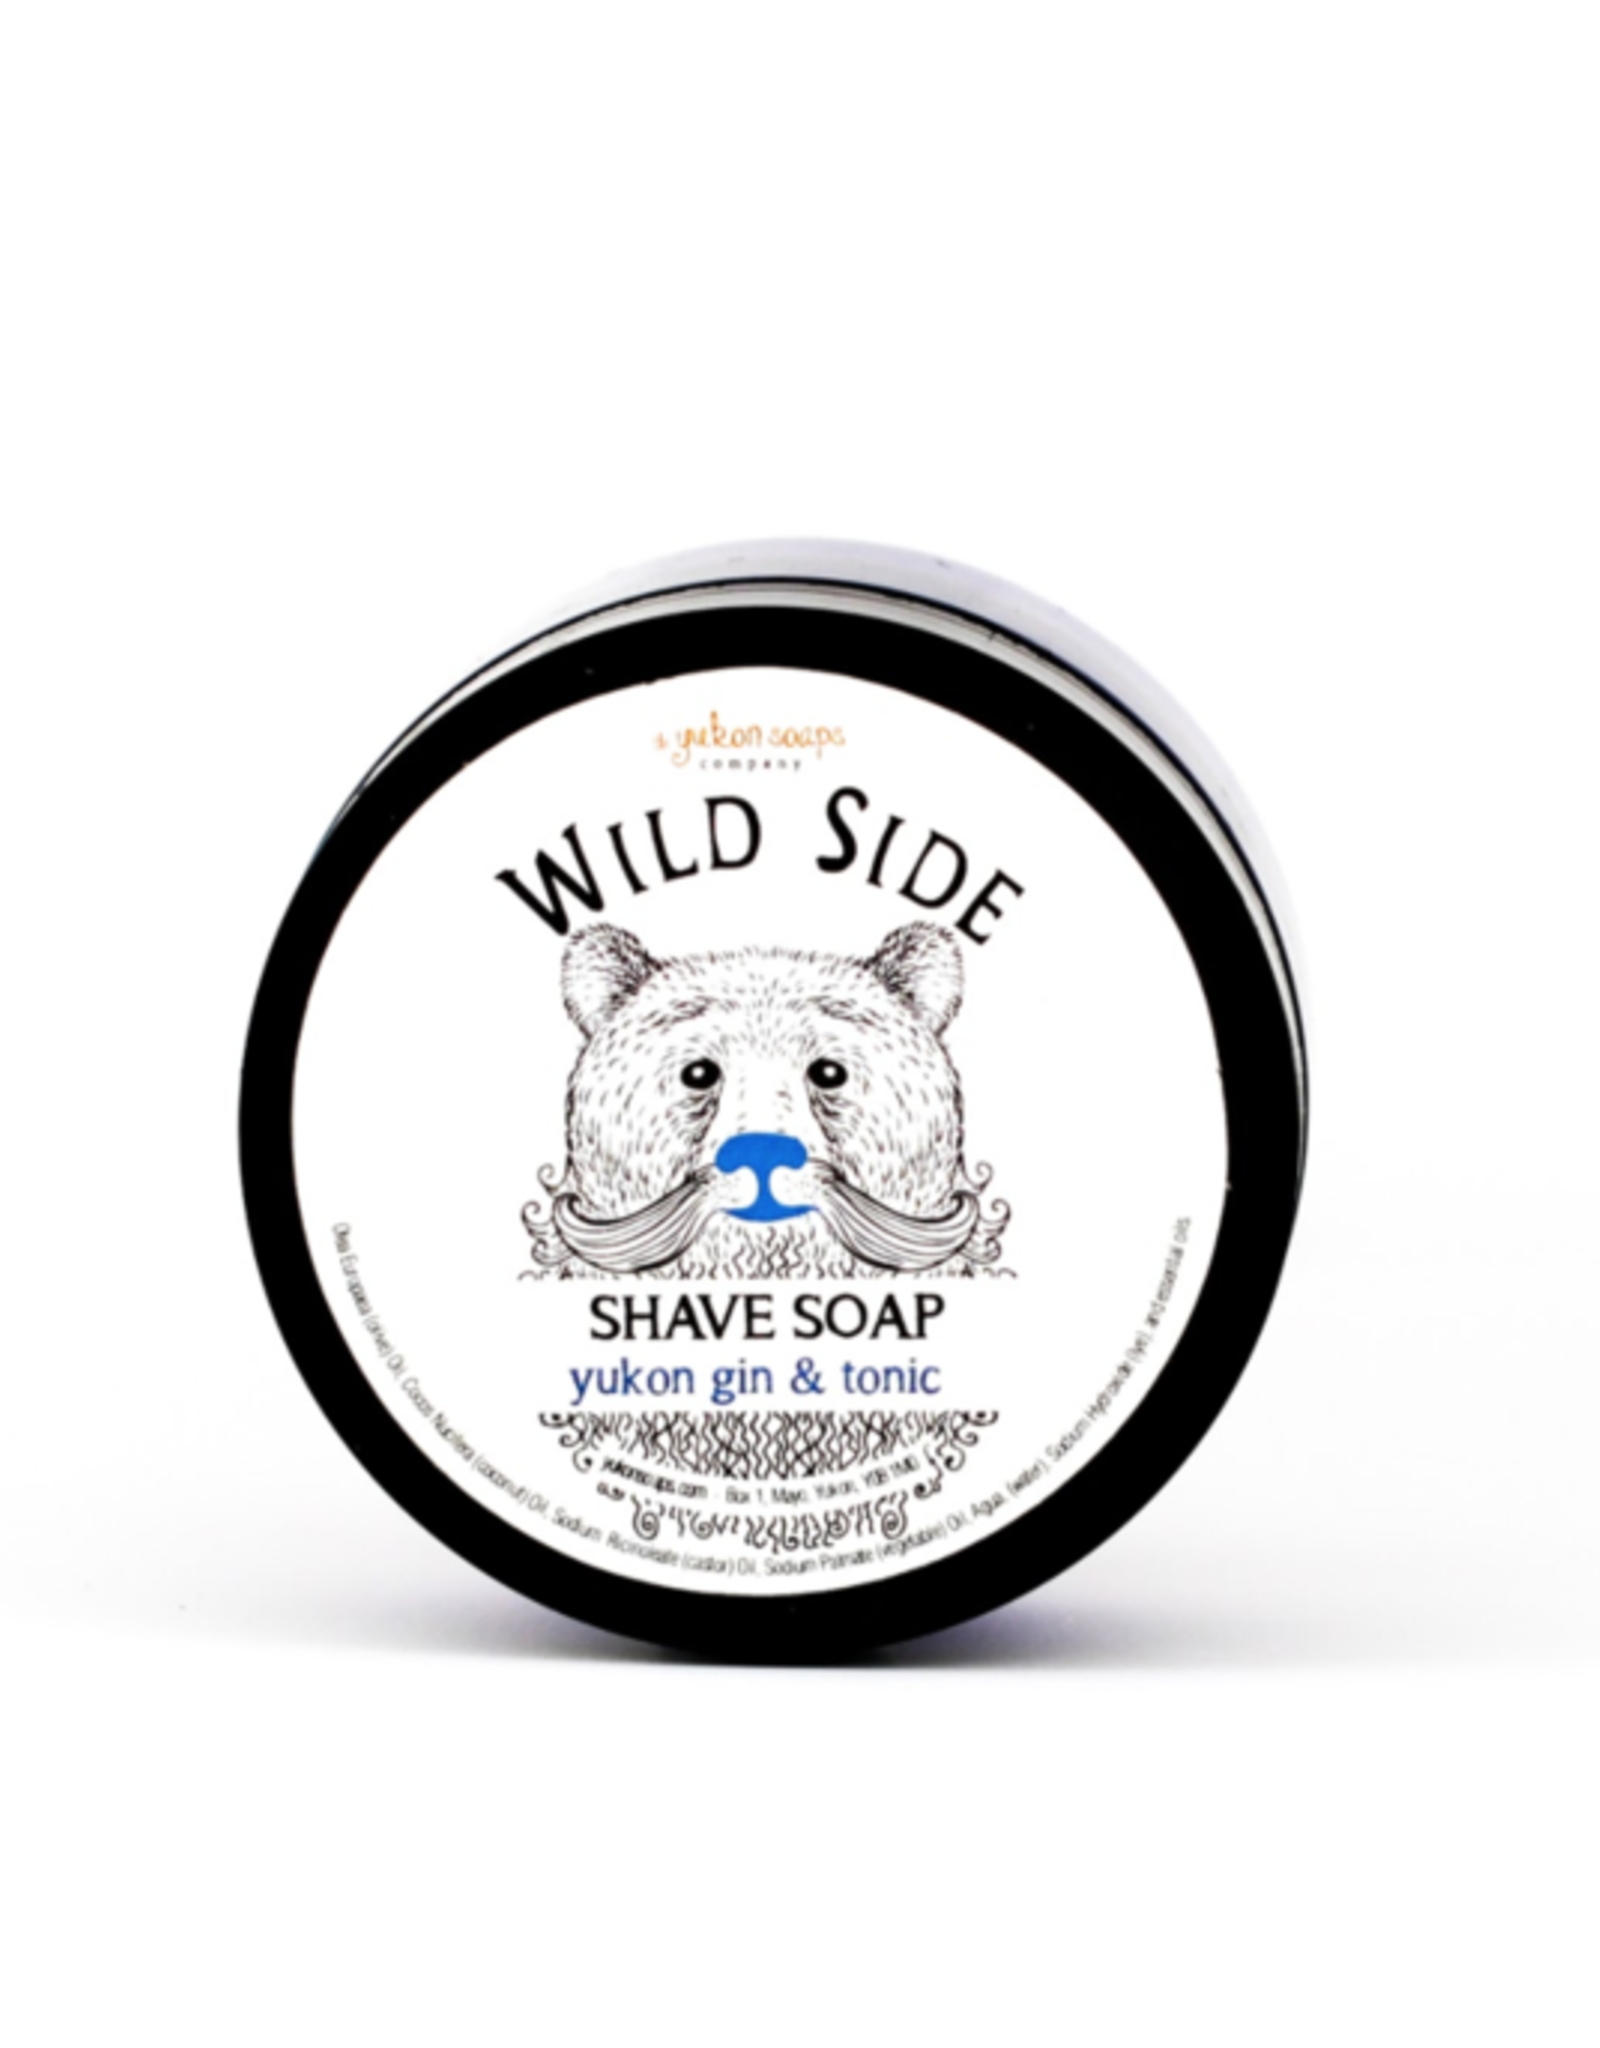 Shave Soap - Black pepper lime